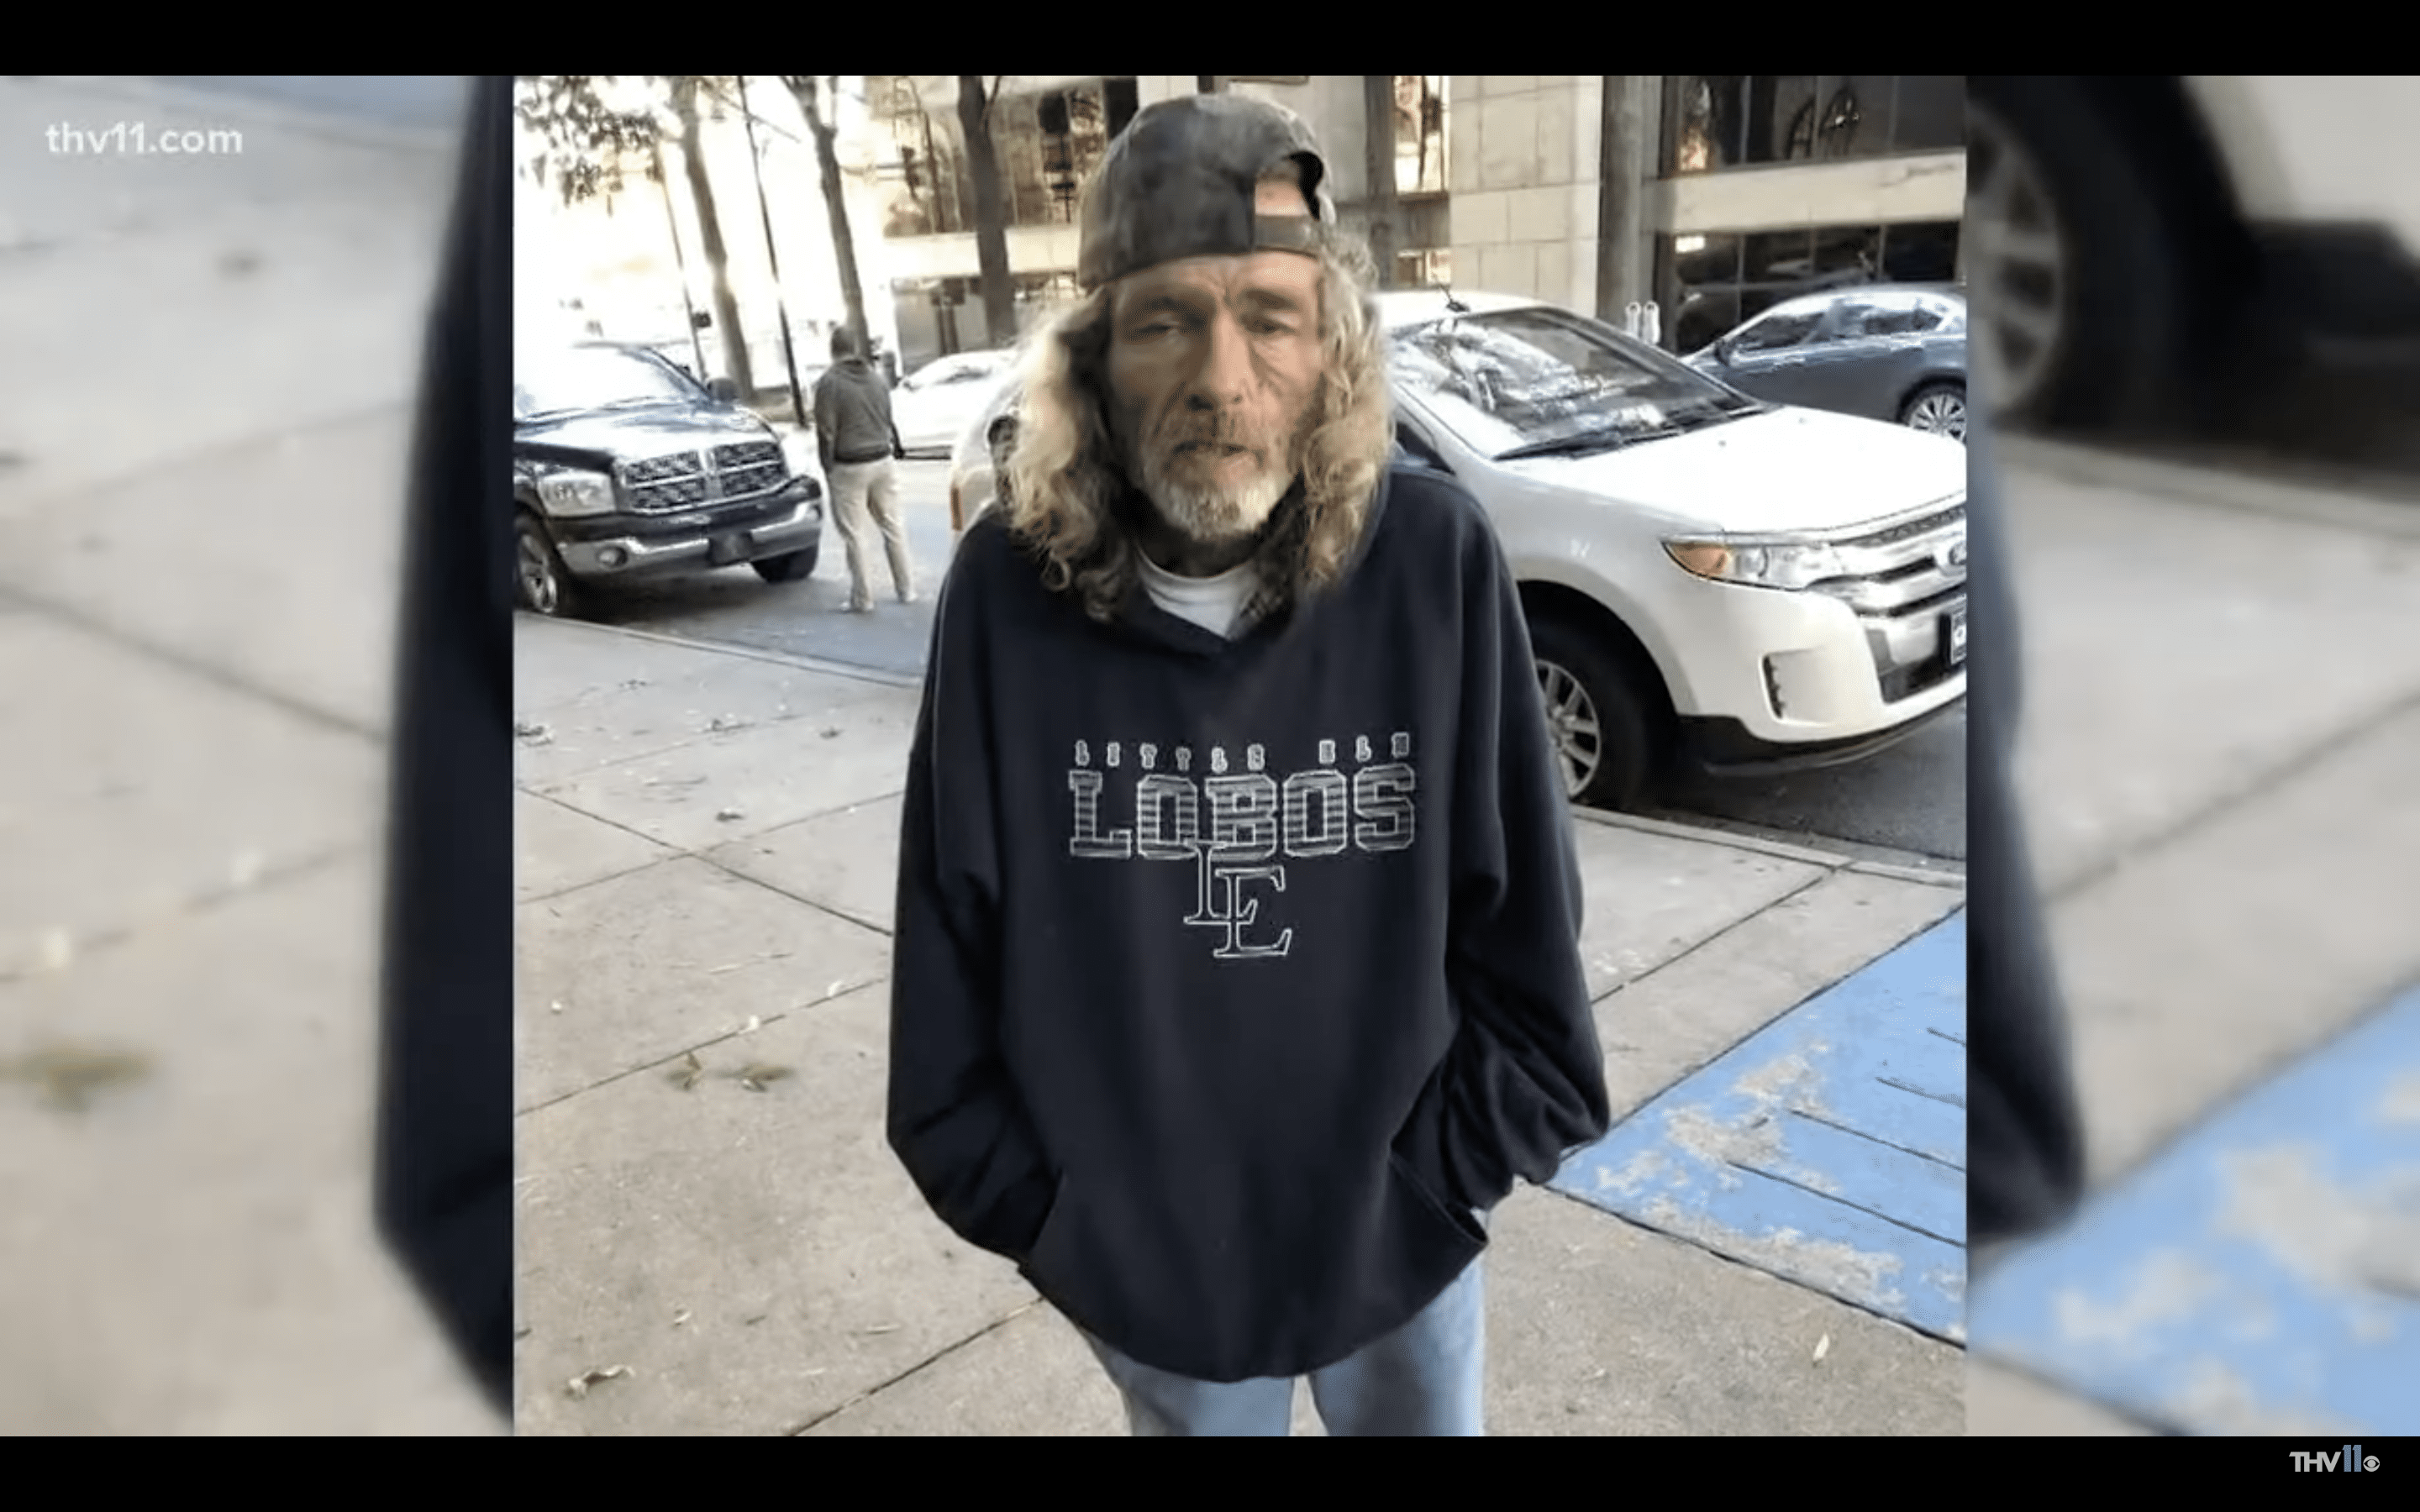 James pictured on the streets of Little Rock, Arkansas. | Photo: youtube.com/THV11